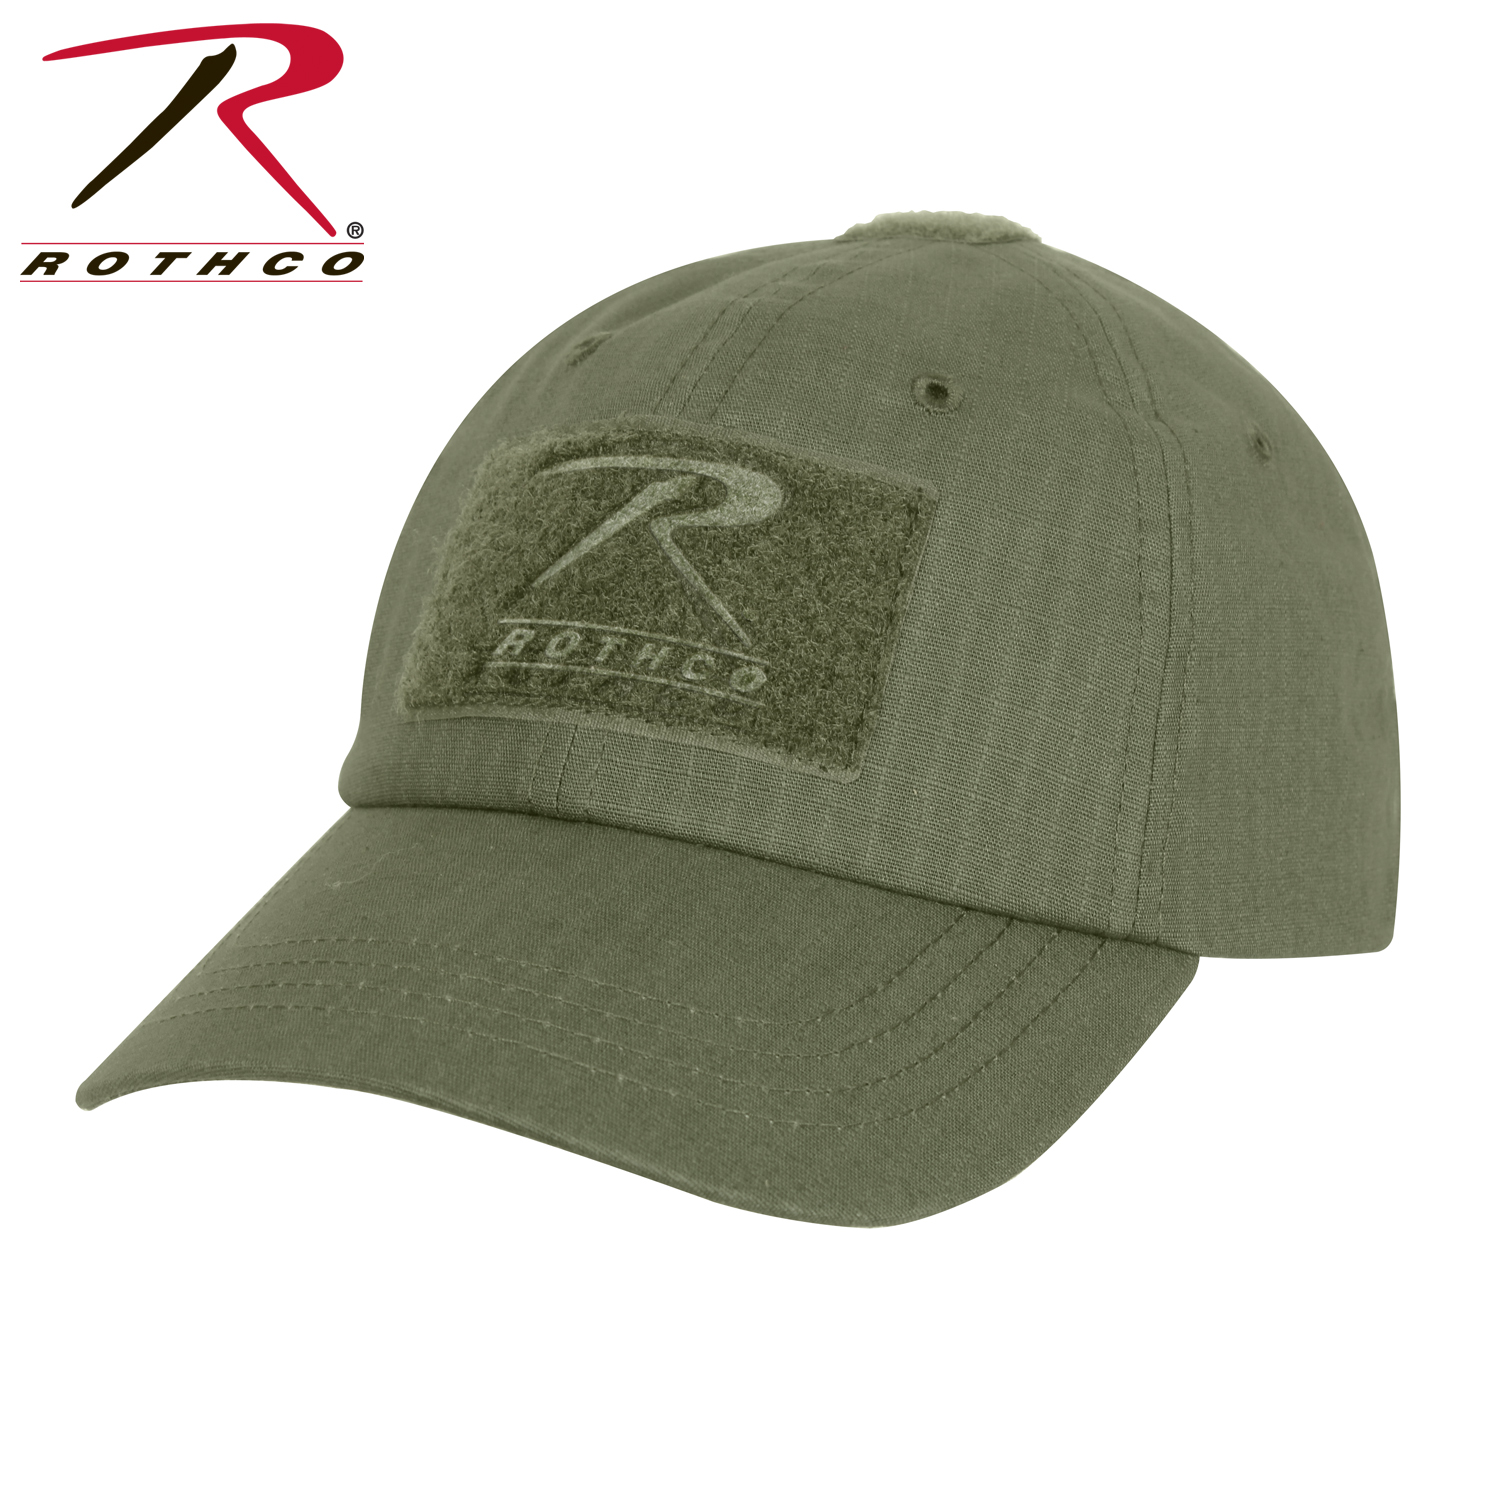 0a86c3d95f851 Rothco 5 Panel Military Street Cap. Learn More. New. rip stop